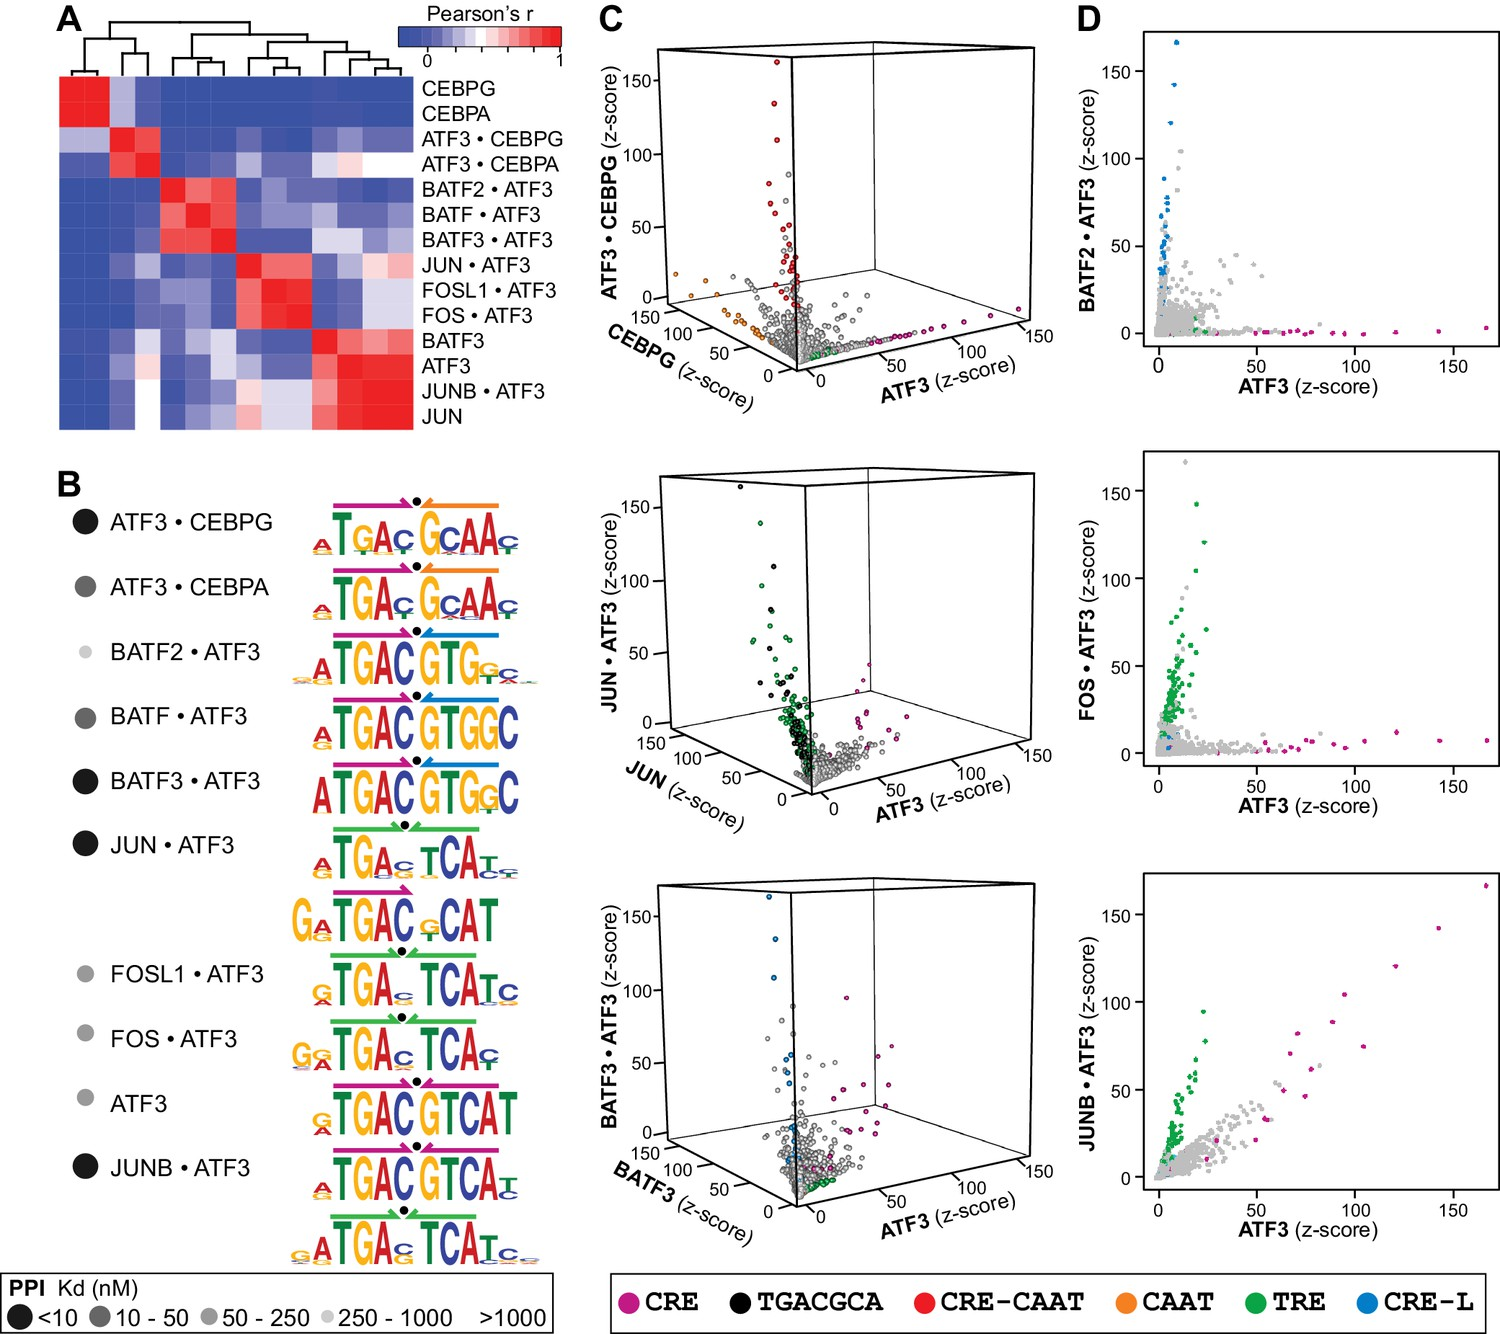 Combinatorial Bzip Dimers Display Complex Dna Binding Specificity L I Electrical Plan Review Atf3 Heterodimers Bind A Range Of Distinct Cognate Sites